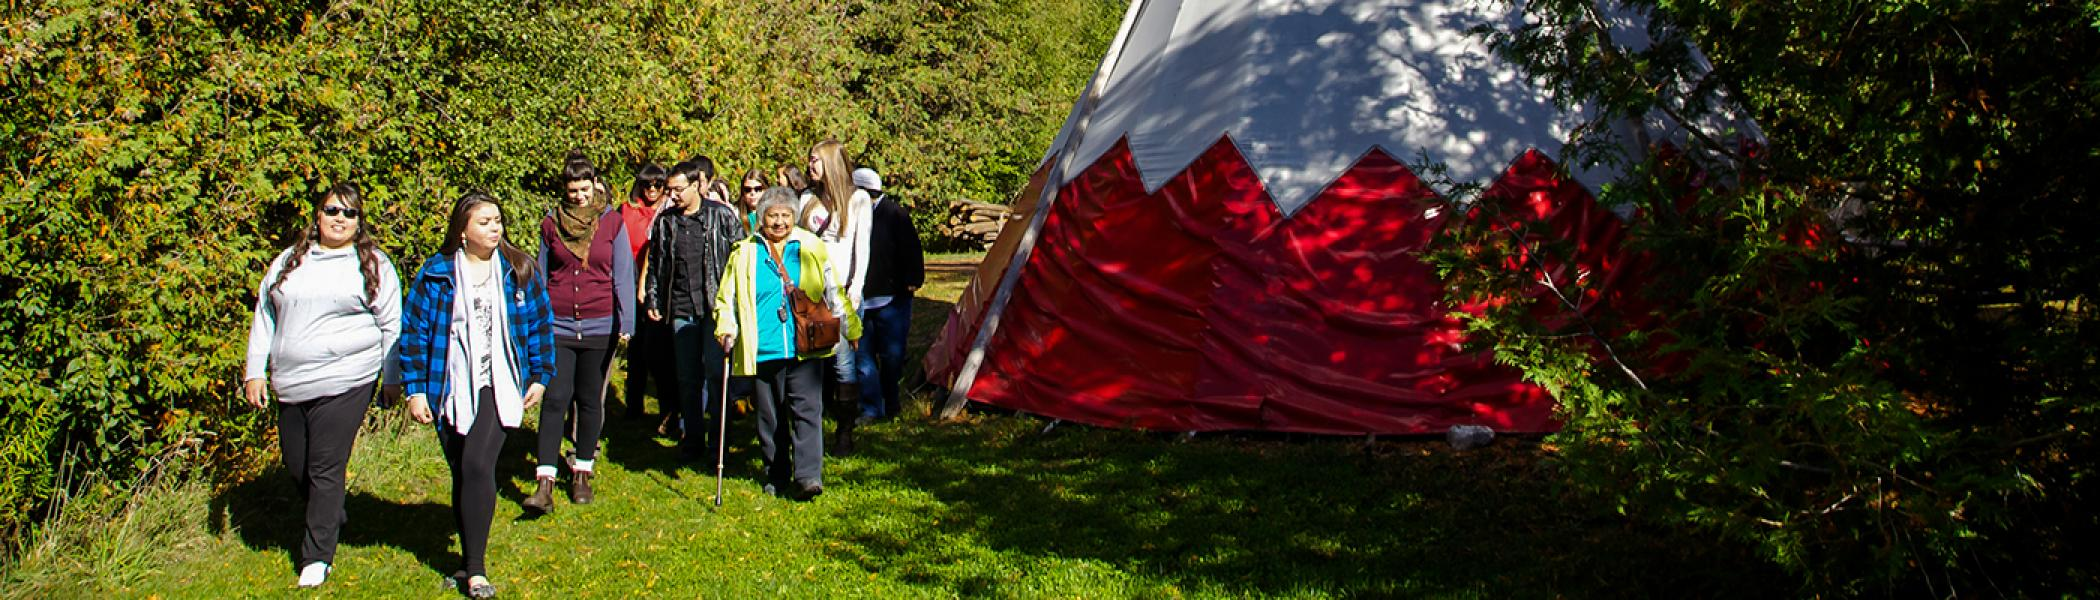 Shirley Williams walking in a forested area with a group of students in front of a tipi